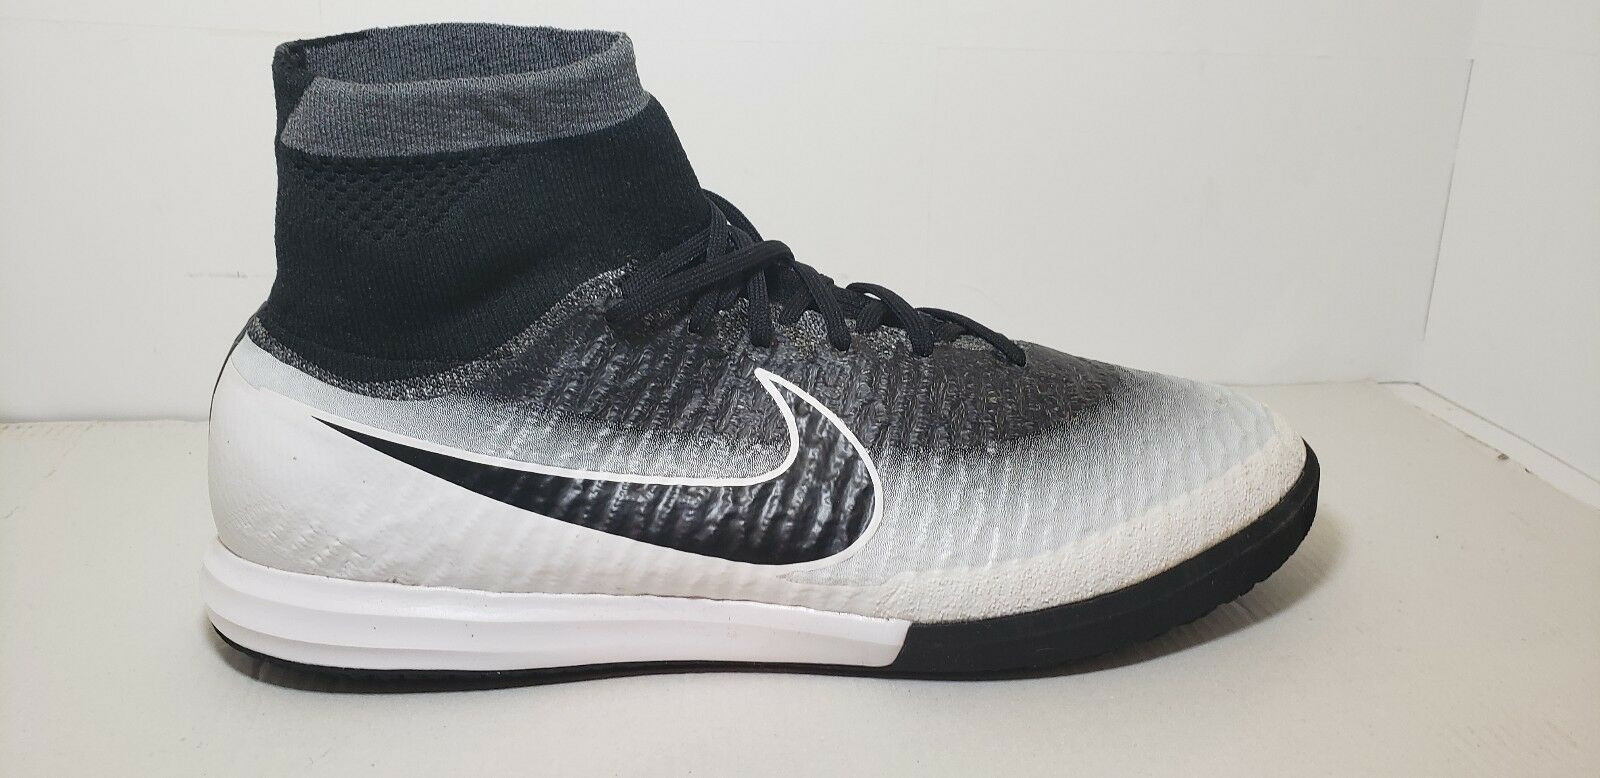 Nike Magistax Proximo IC Men's Indoor Soccer Shoe 718358 100 Size 11